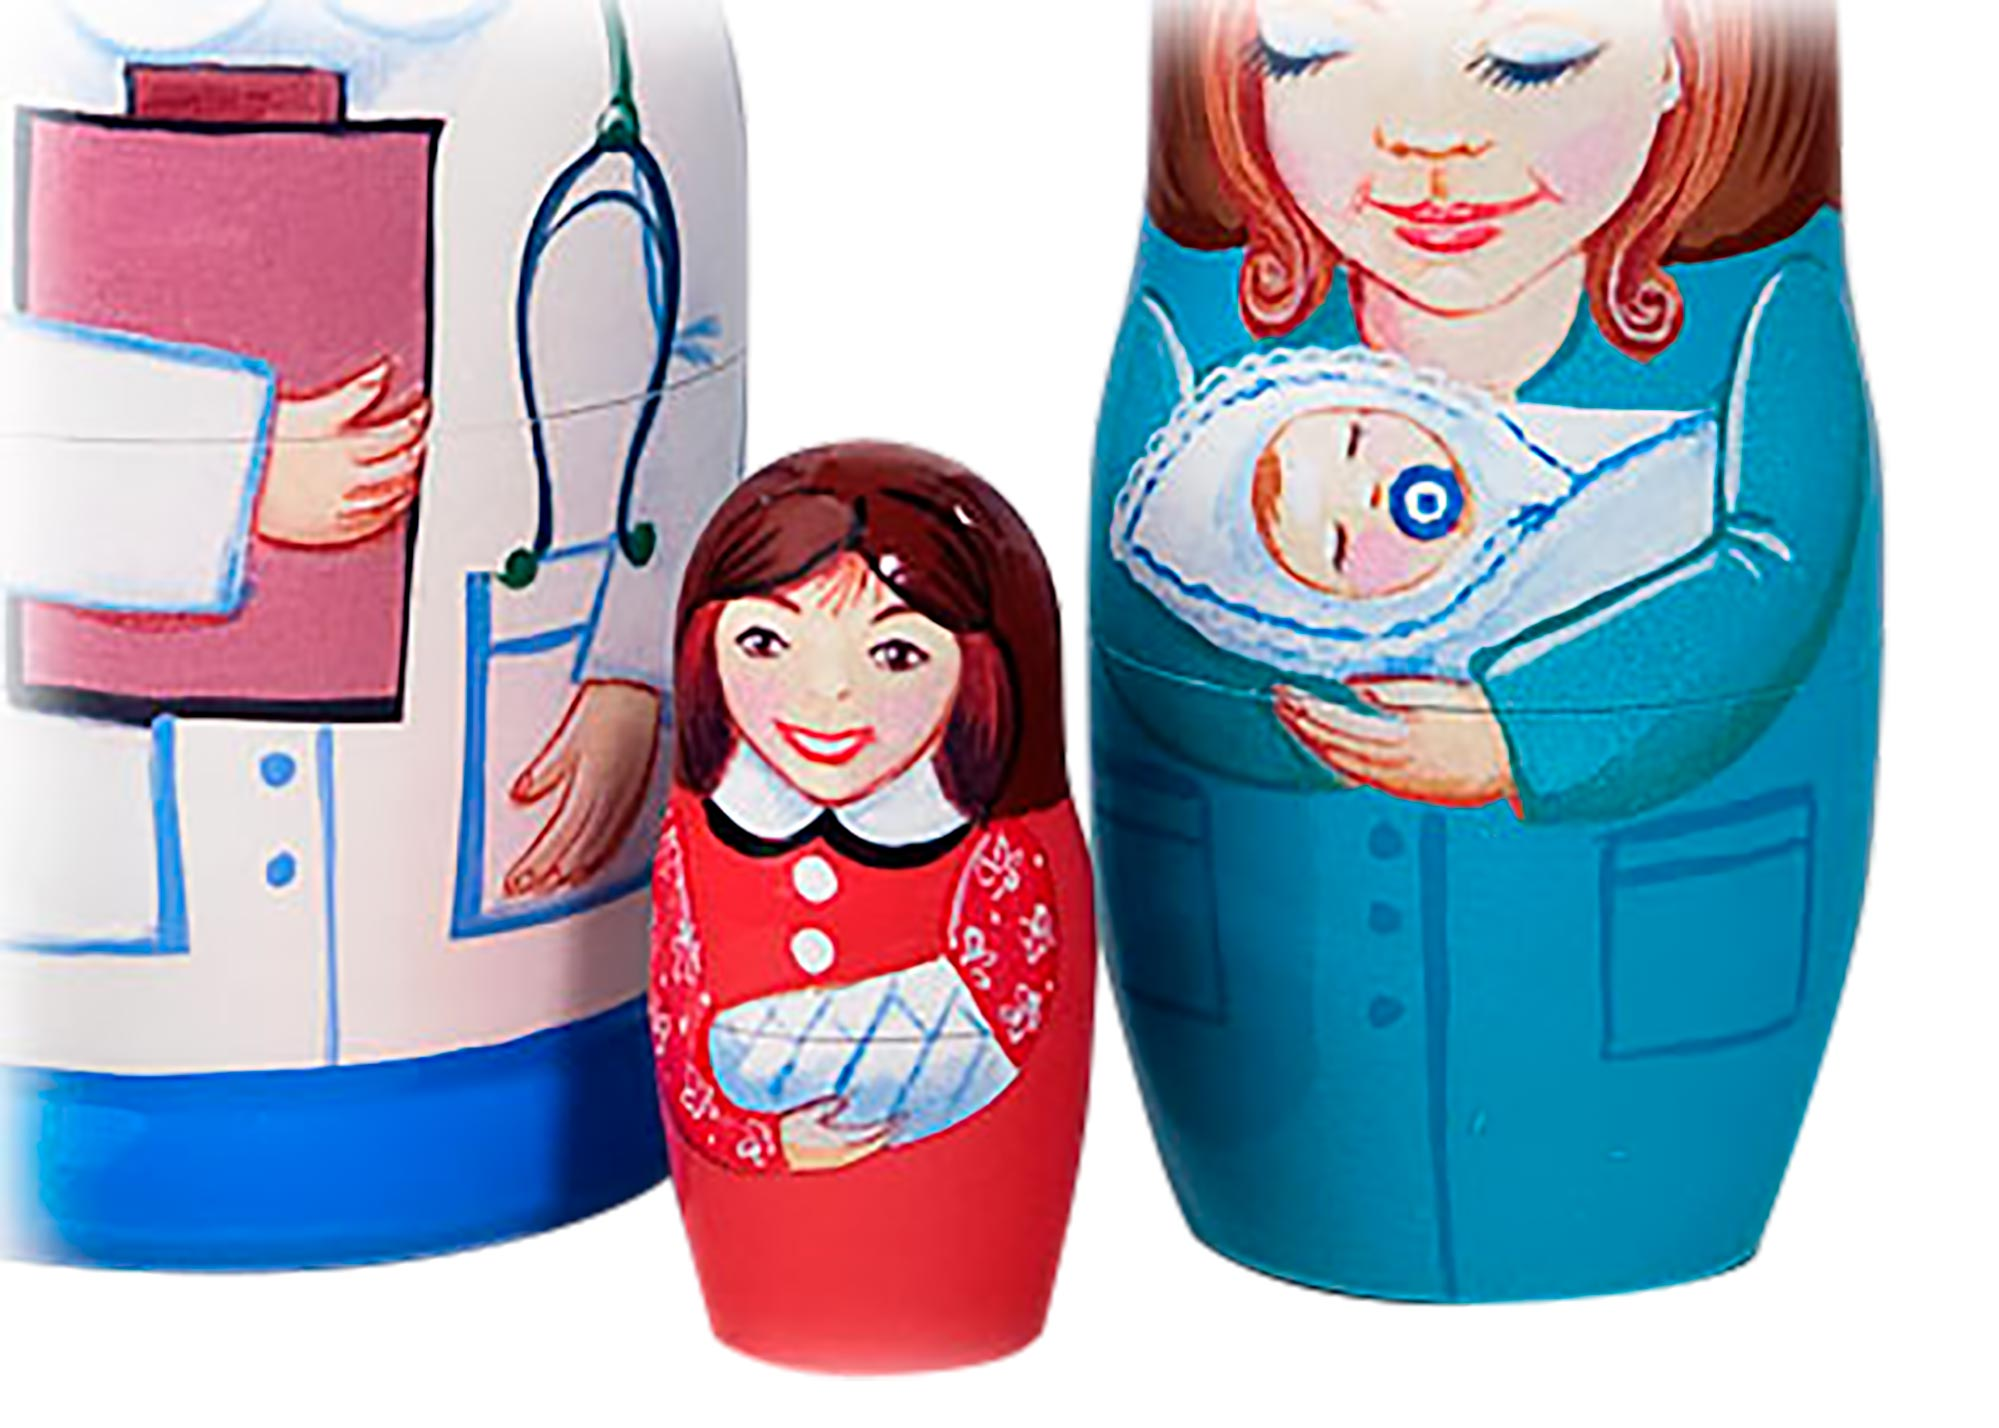 "Buy Nurse Nesting Doll 5 pc./5"" at GoldenCockerel.com"